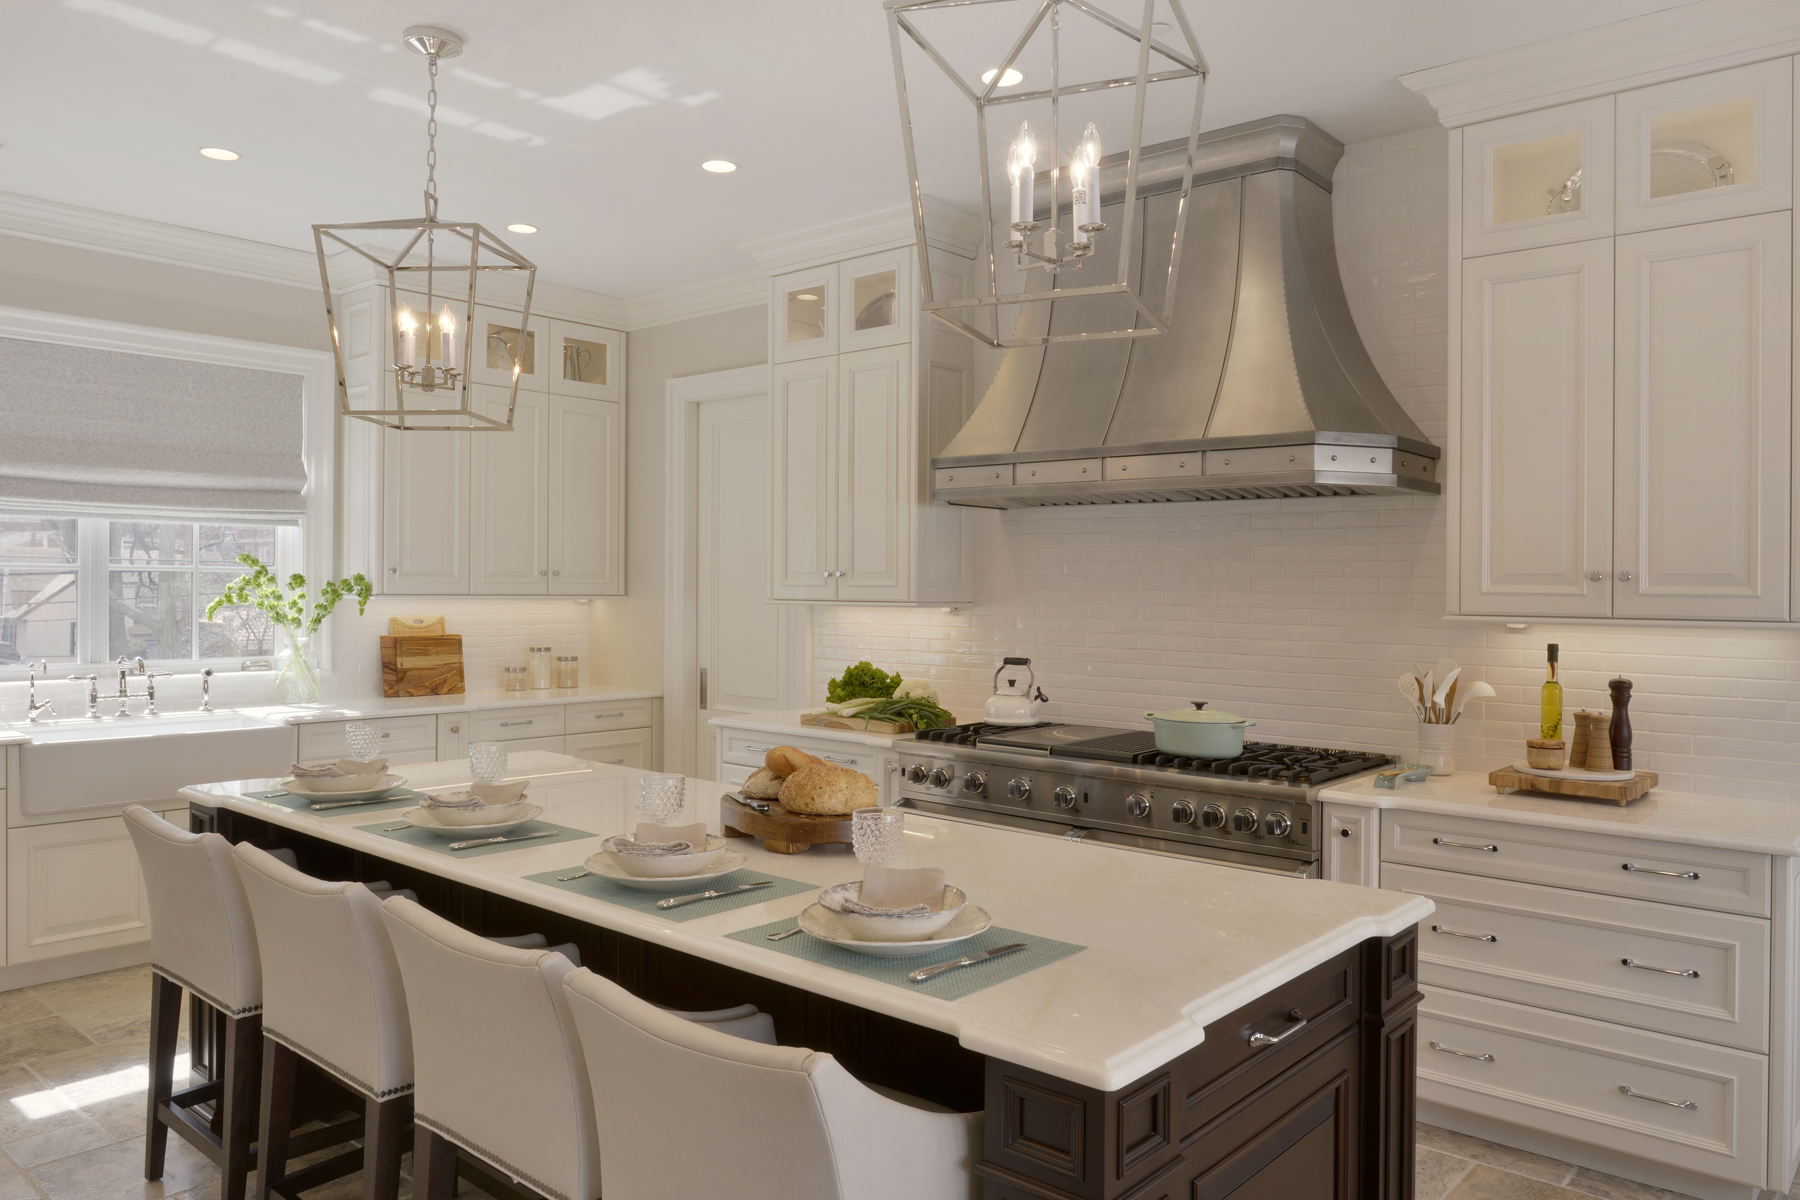 Large island with seating in expansive traditional kitchen. Island features cherry fully custom cabinets from Rutt Handcrafted cabinets. White painted Rutt cabinets and wood paneled appliances throughout the rest of the kitchen. Designed by Tom Vecchio of Bilotta Kitchens.